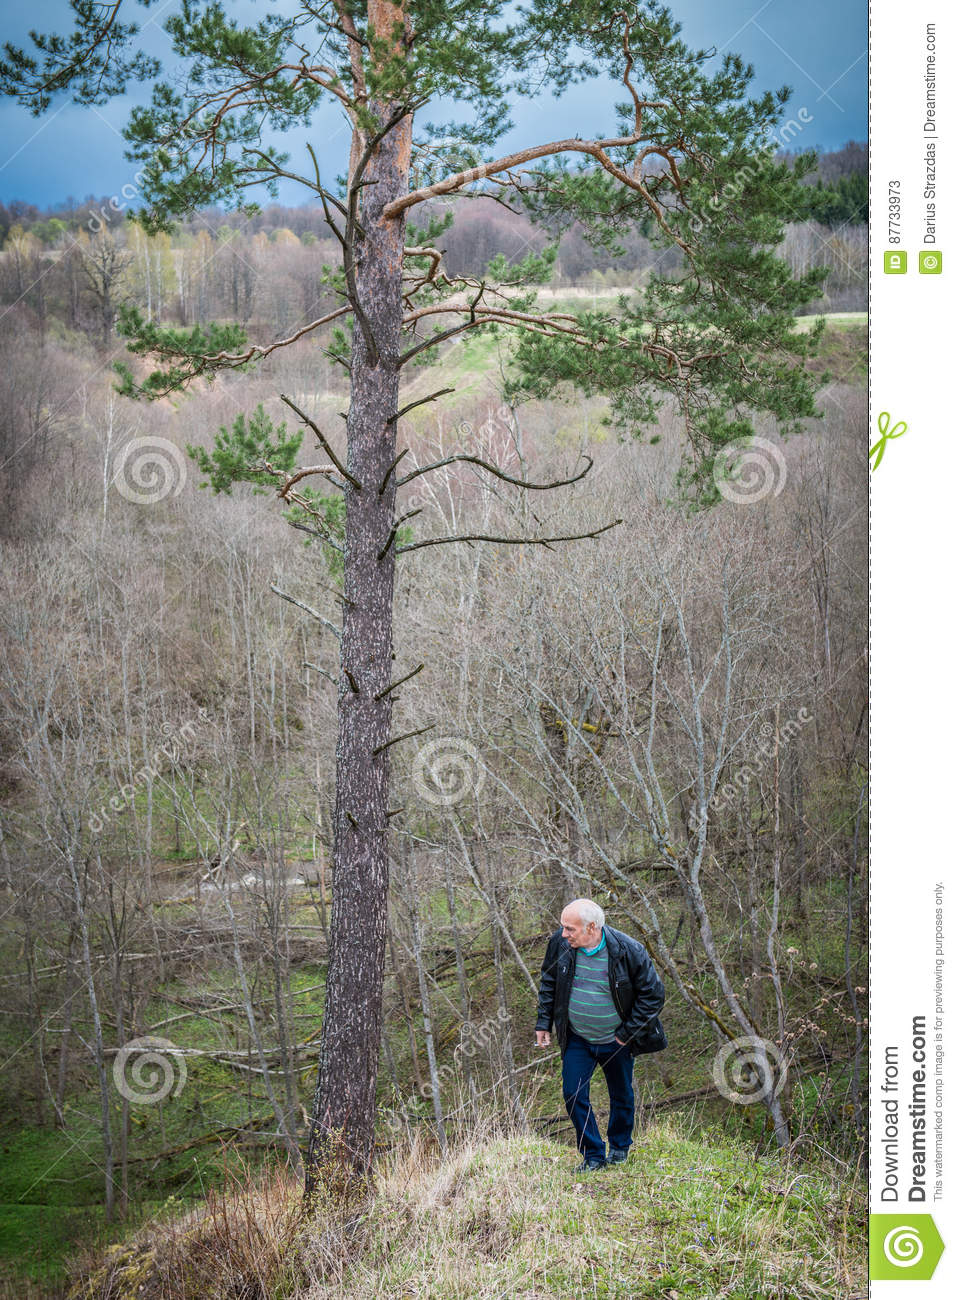 Man in nature alone